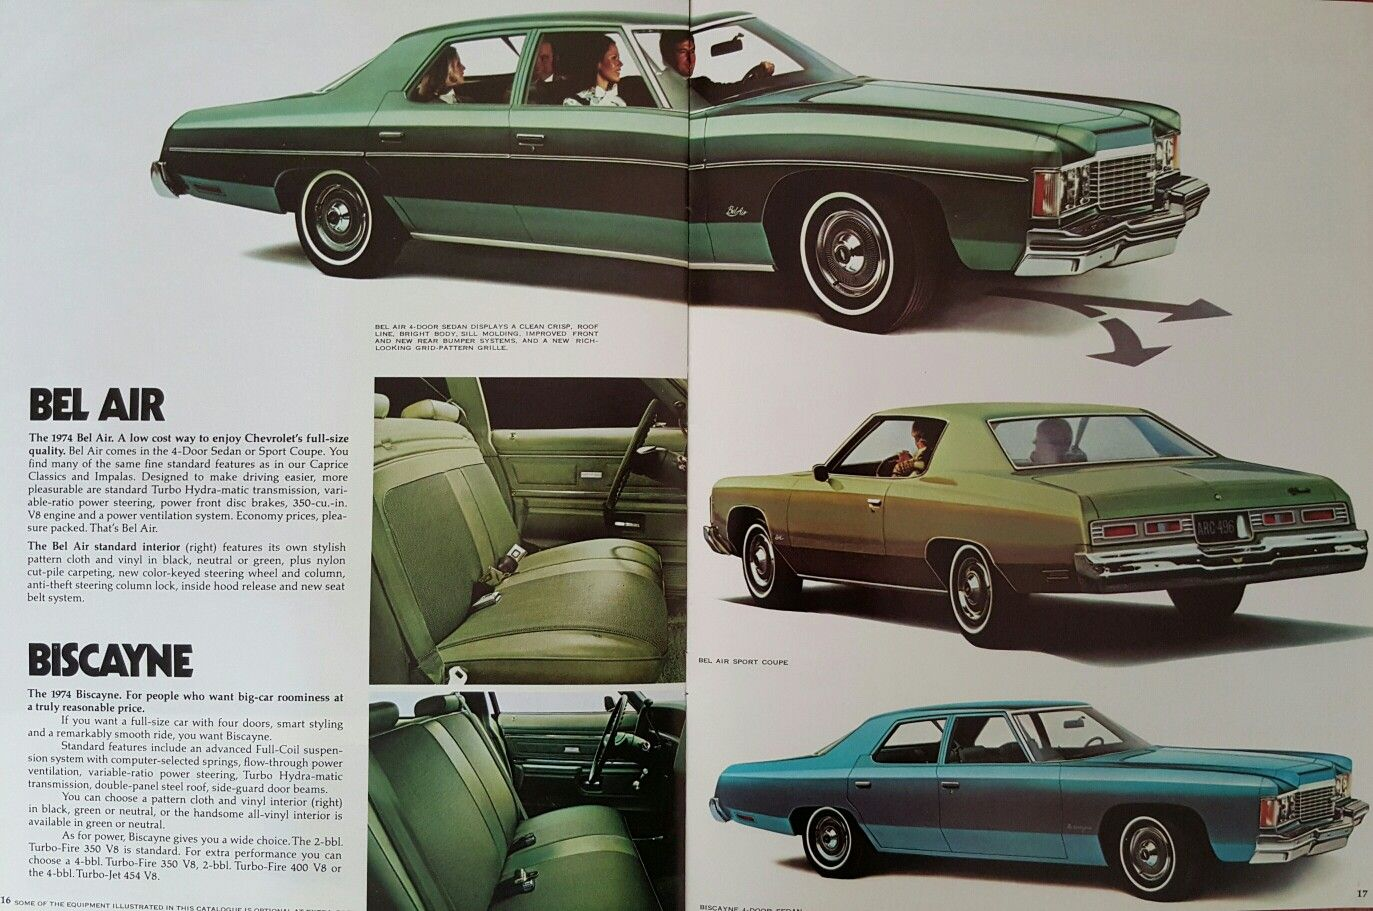 1974 Chevrolet Bel Air and Biscayne Car ads, Chevrolet